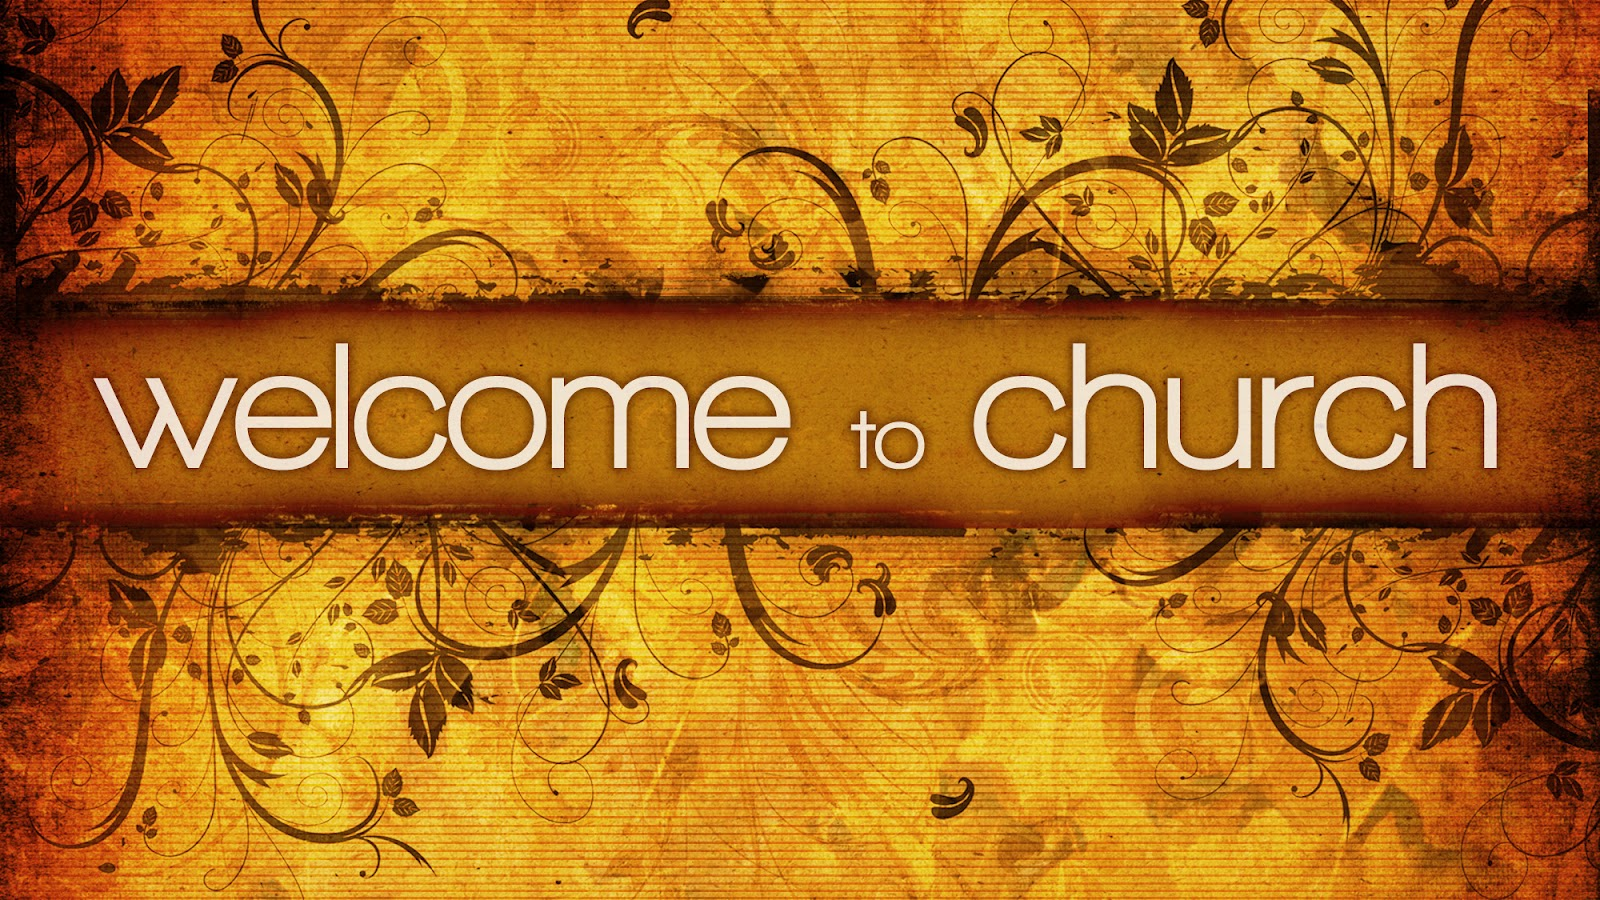 WELCOME TO CHURCH-3